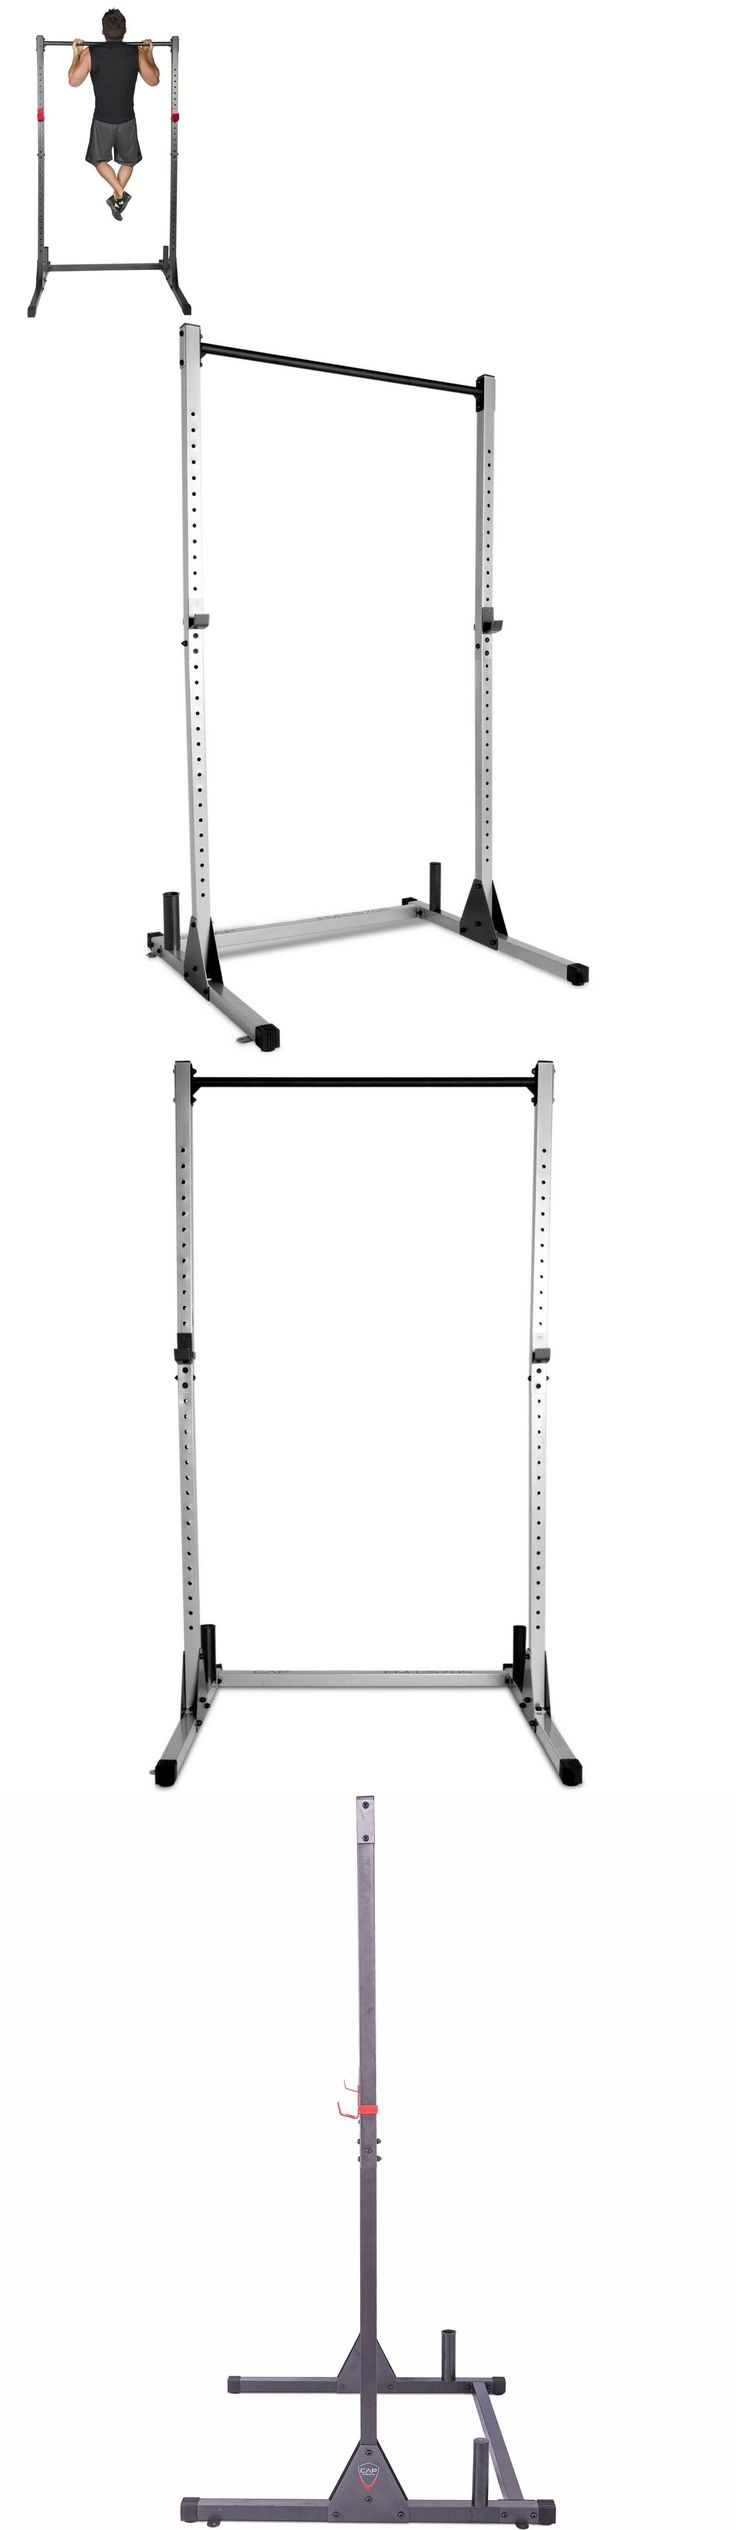 Power Racks and Smith Machines 179815: Free Standing Pull Up Bar Home Gym Equipment Pullup Exercise Squat Rack Stand -> BUY IT NOW ONLY: $133.43 on eBay!